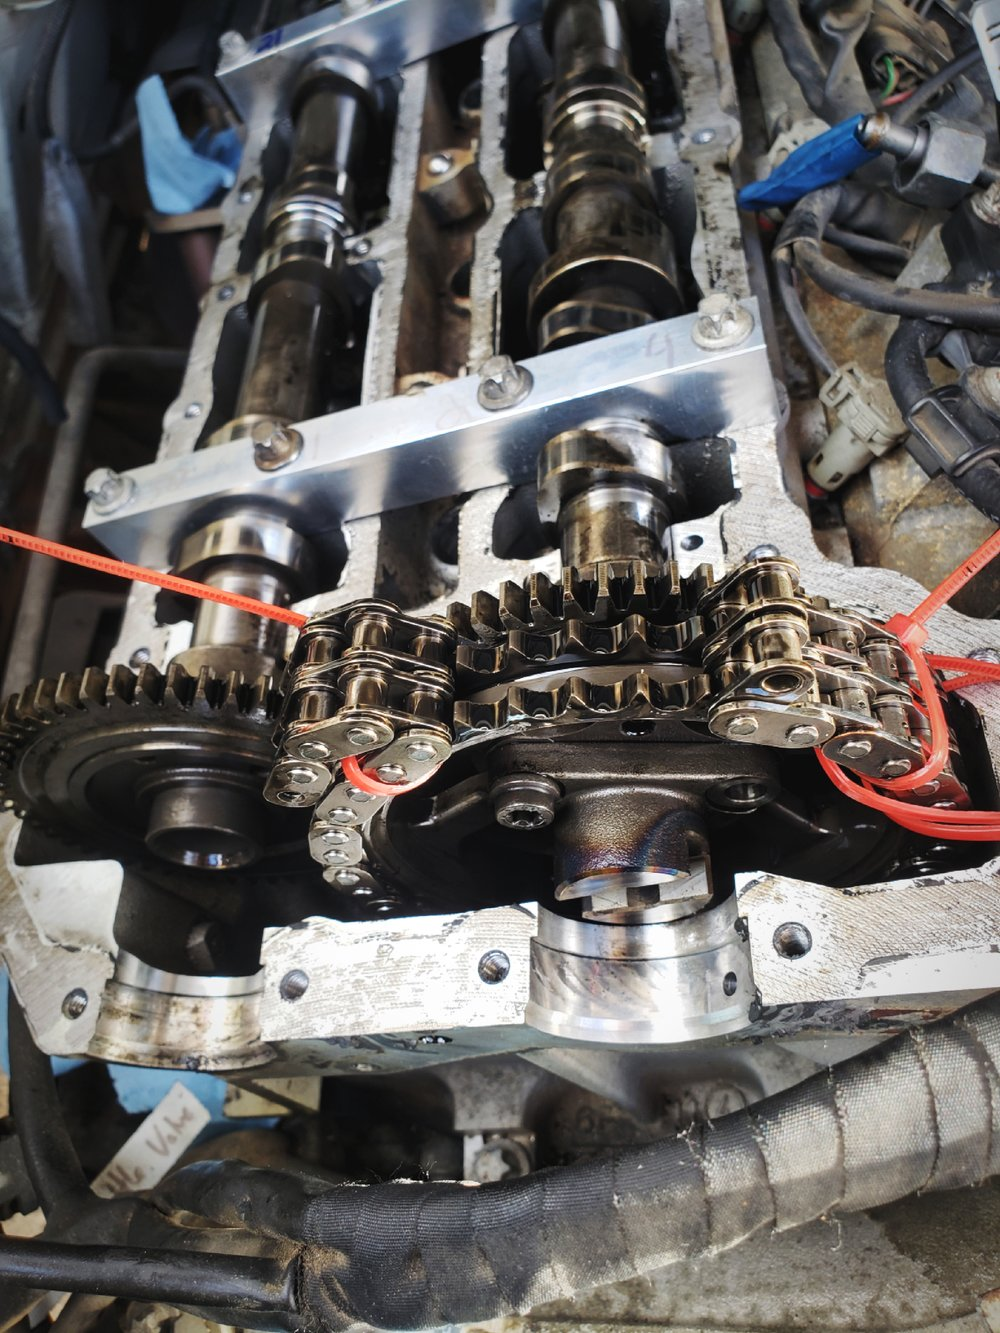 This was a scary moment—the engine open and our timing chain broken, ready for replacement.